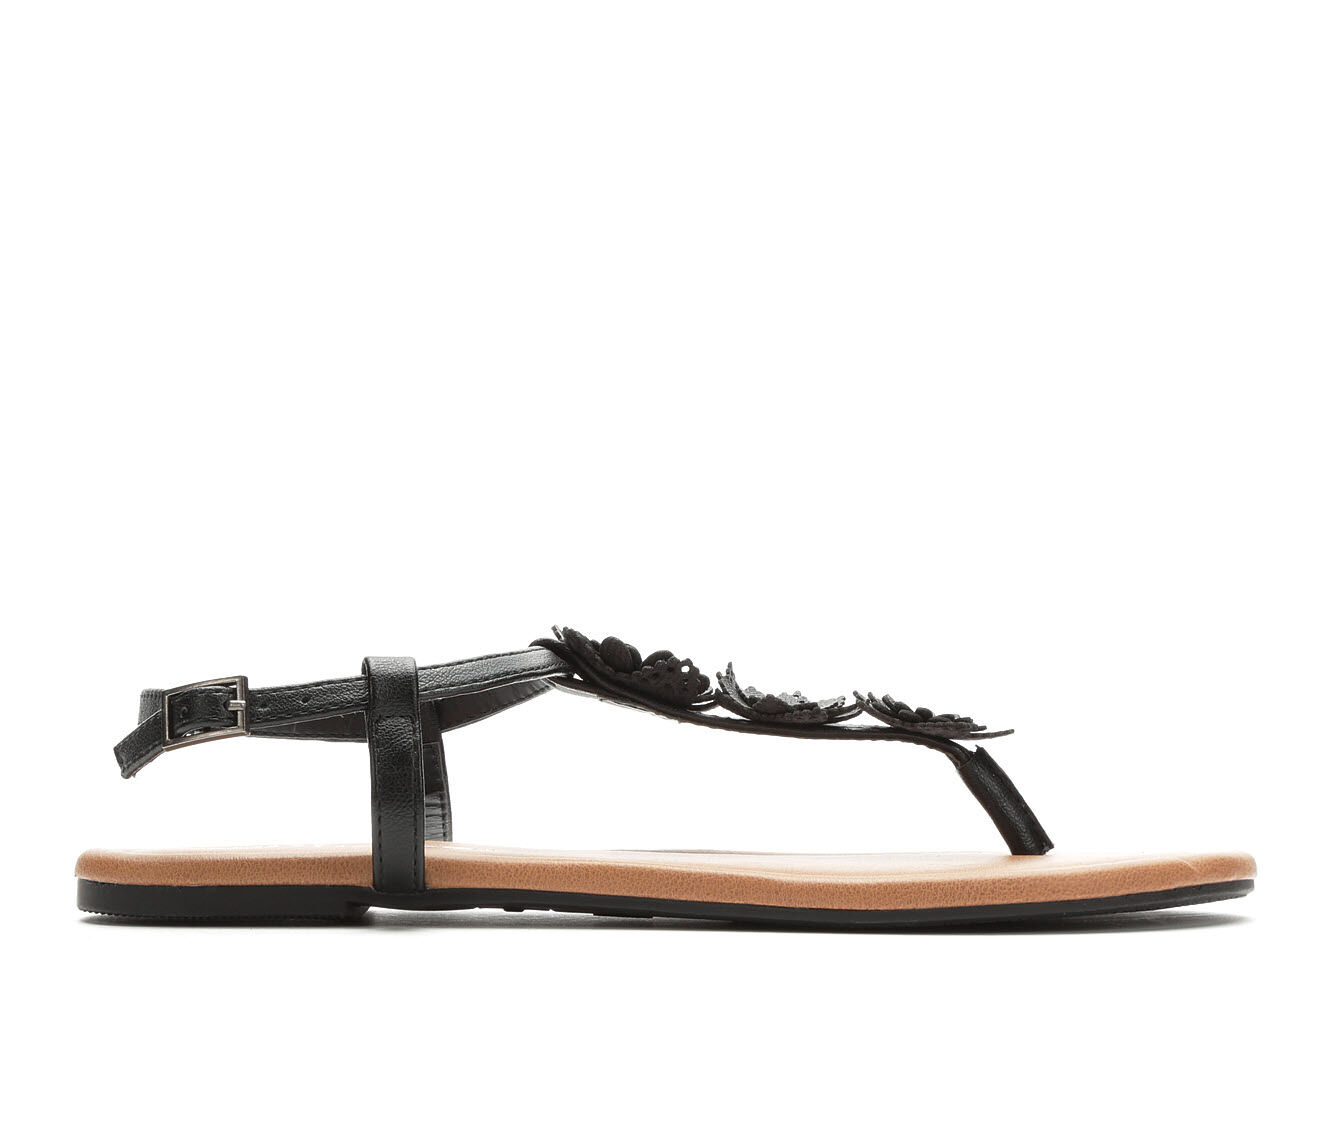 buy cheap great deals cheap sale choice Women's Solanz Daisy T-Strap Sandals good selling cheap price 71Pps0BMu